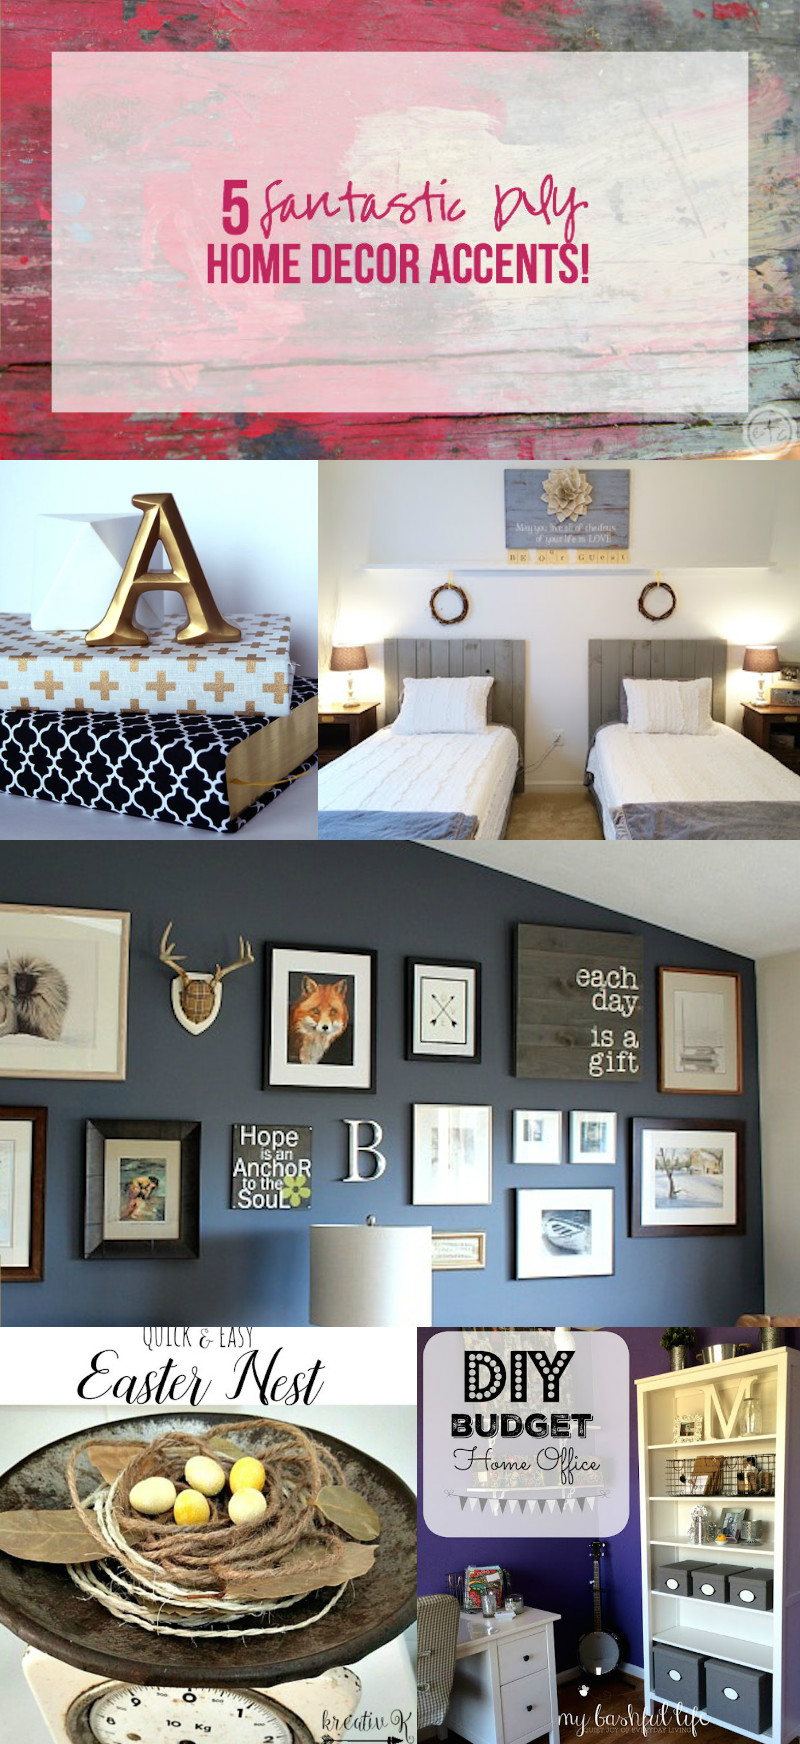 5 Fantastic DIY Home Decor Accents! with Happily Ever After, Etc.